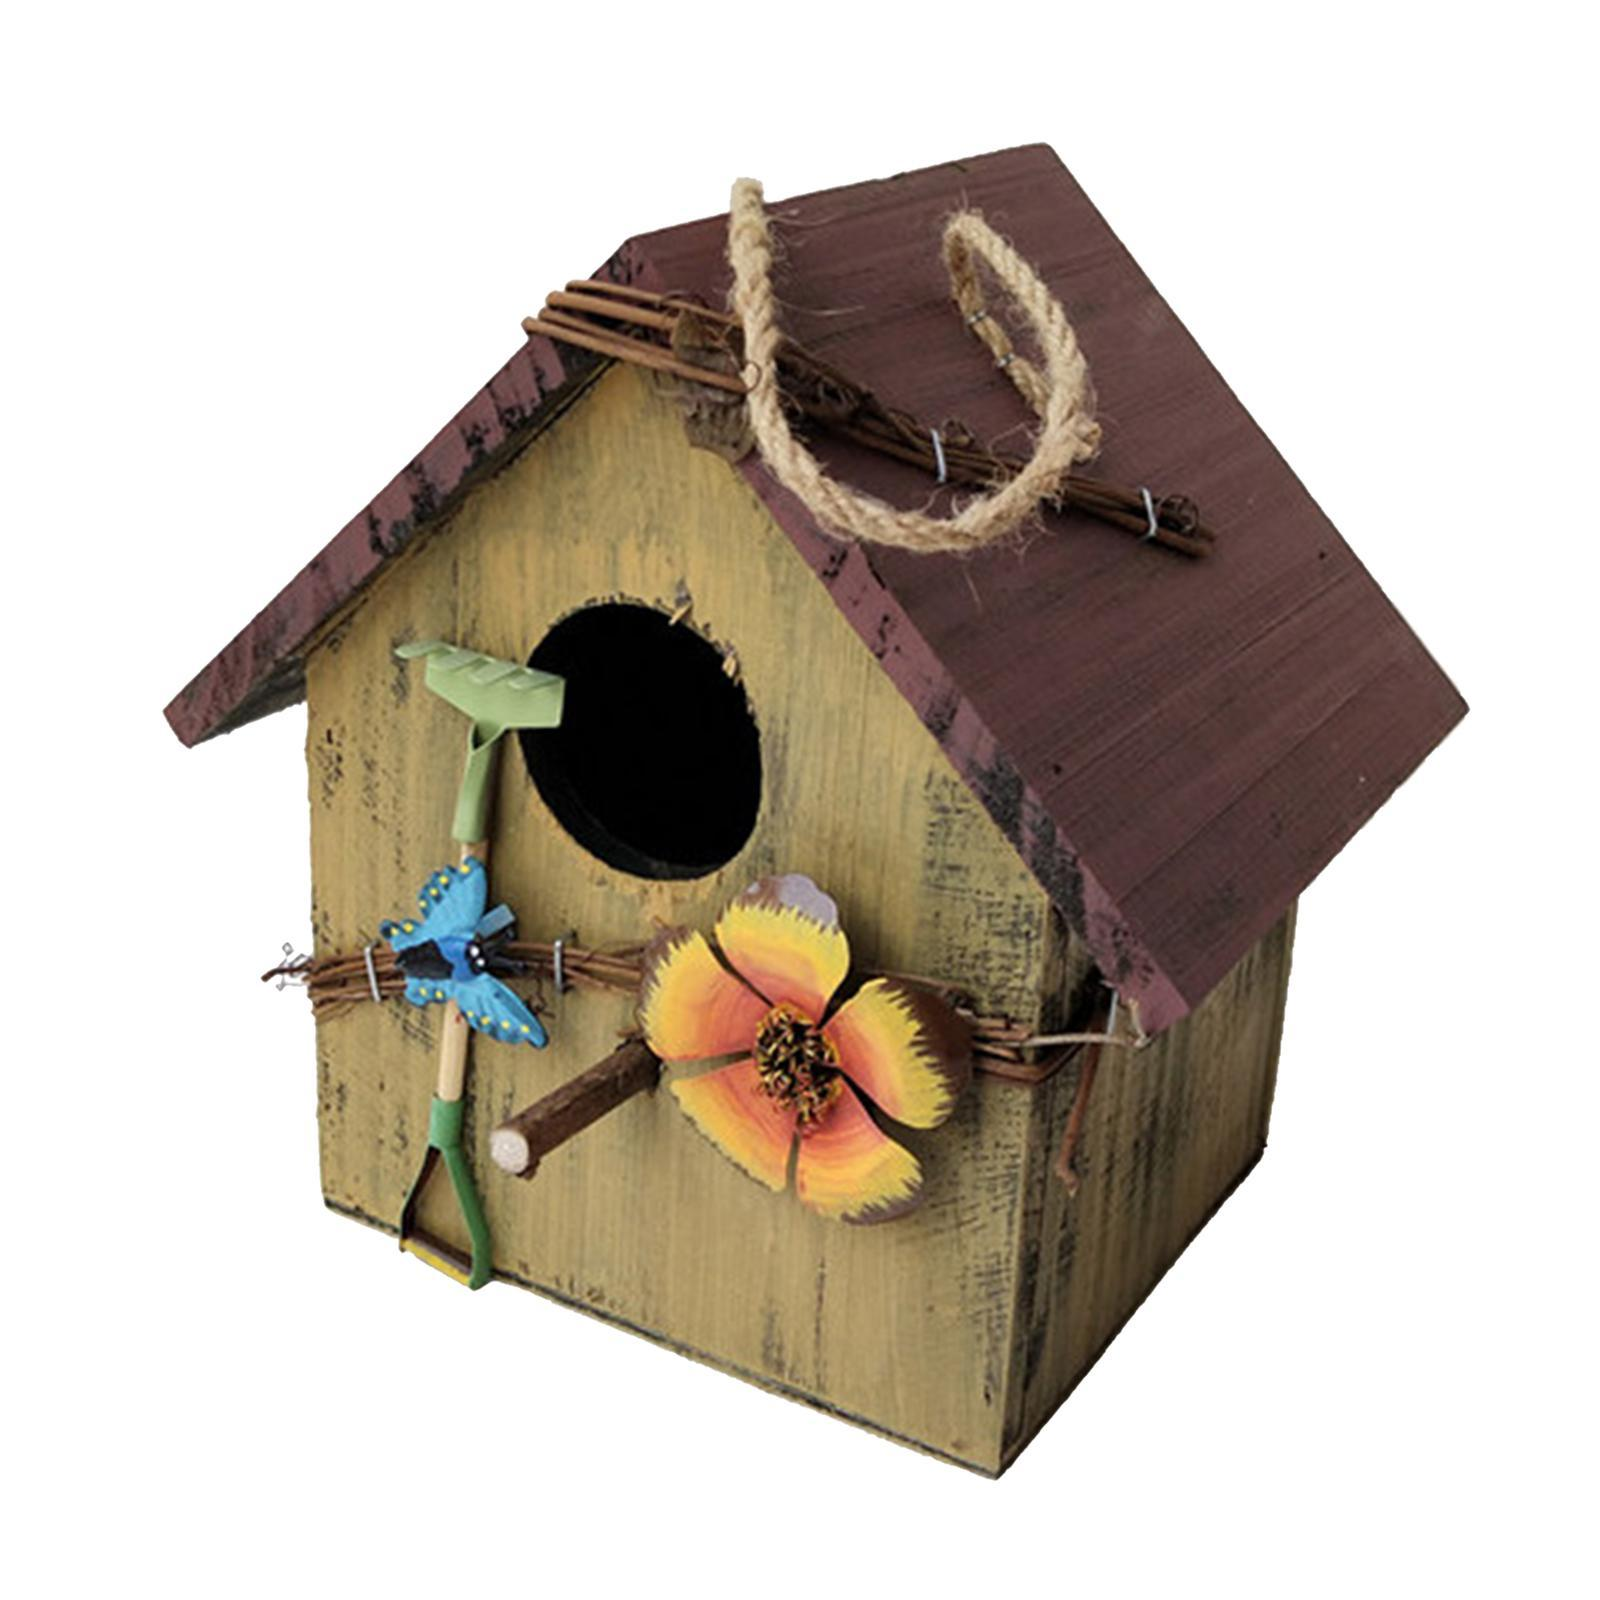 thumbnail 9 - Antique Hand Painted Wood Birdhouse Decorative Outdoor Bird House Garden